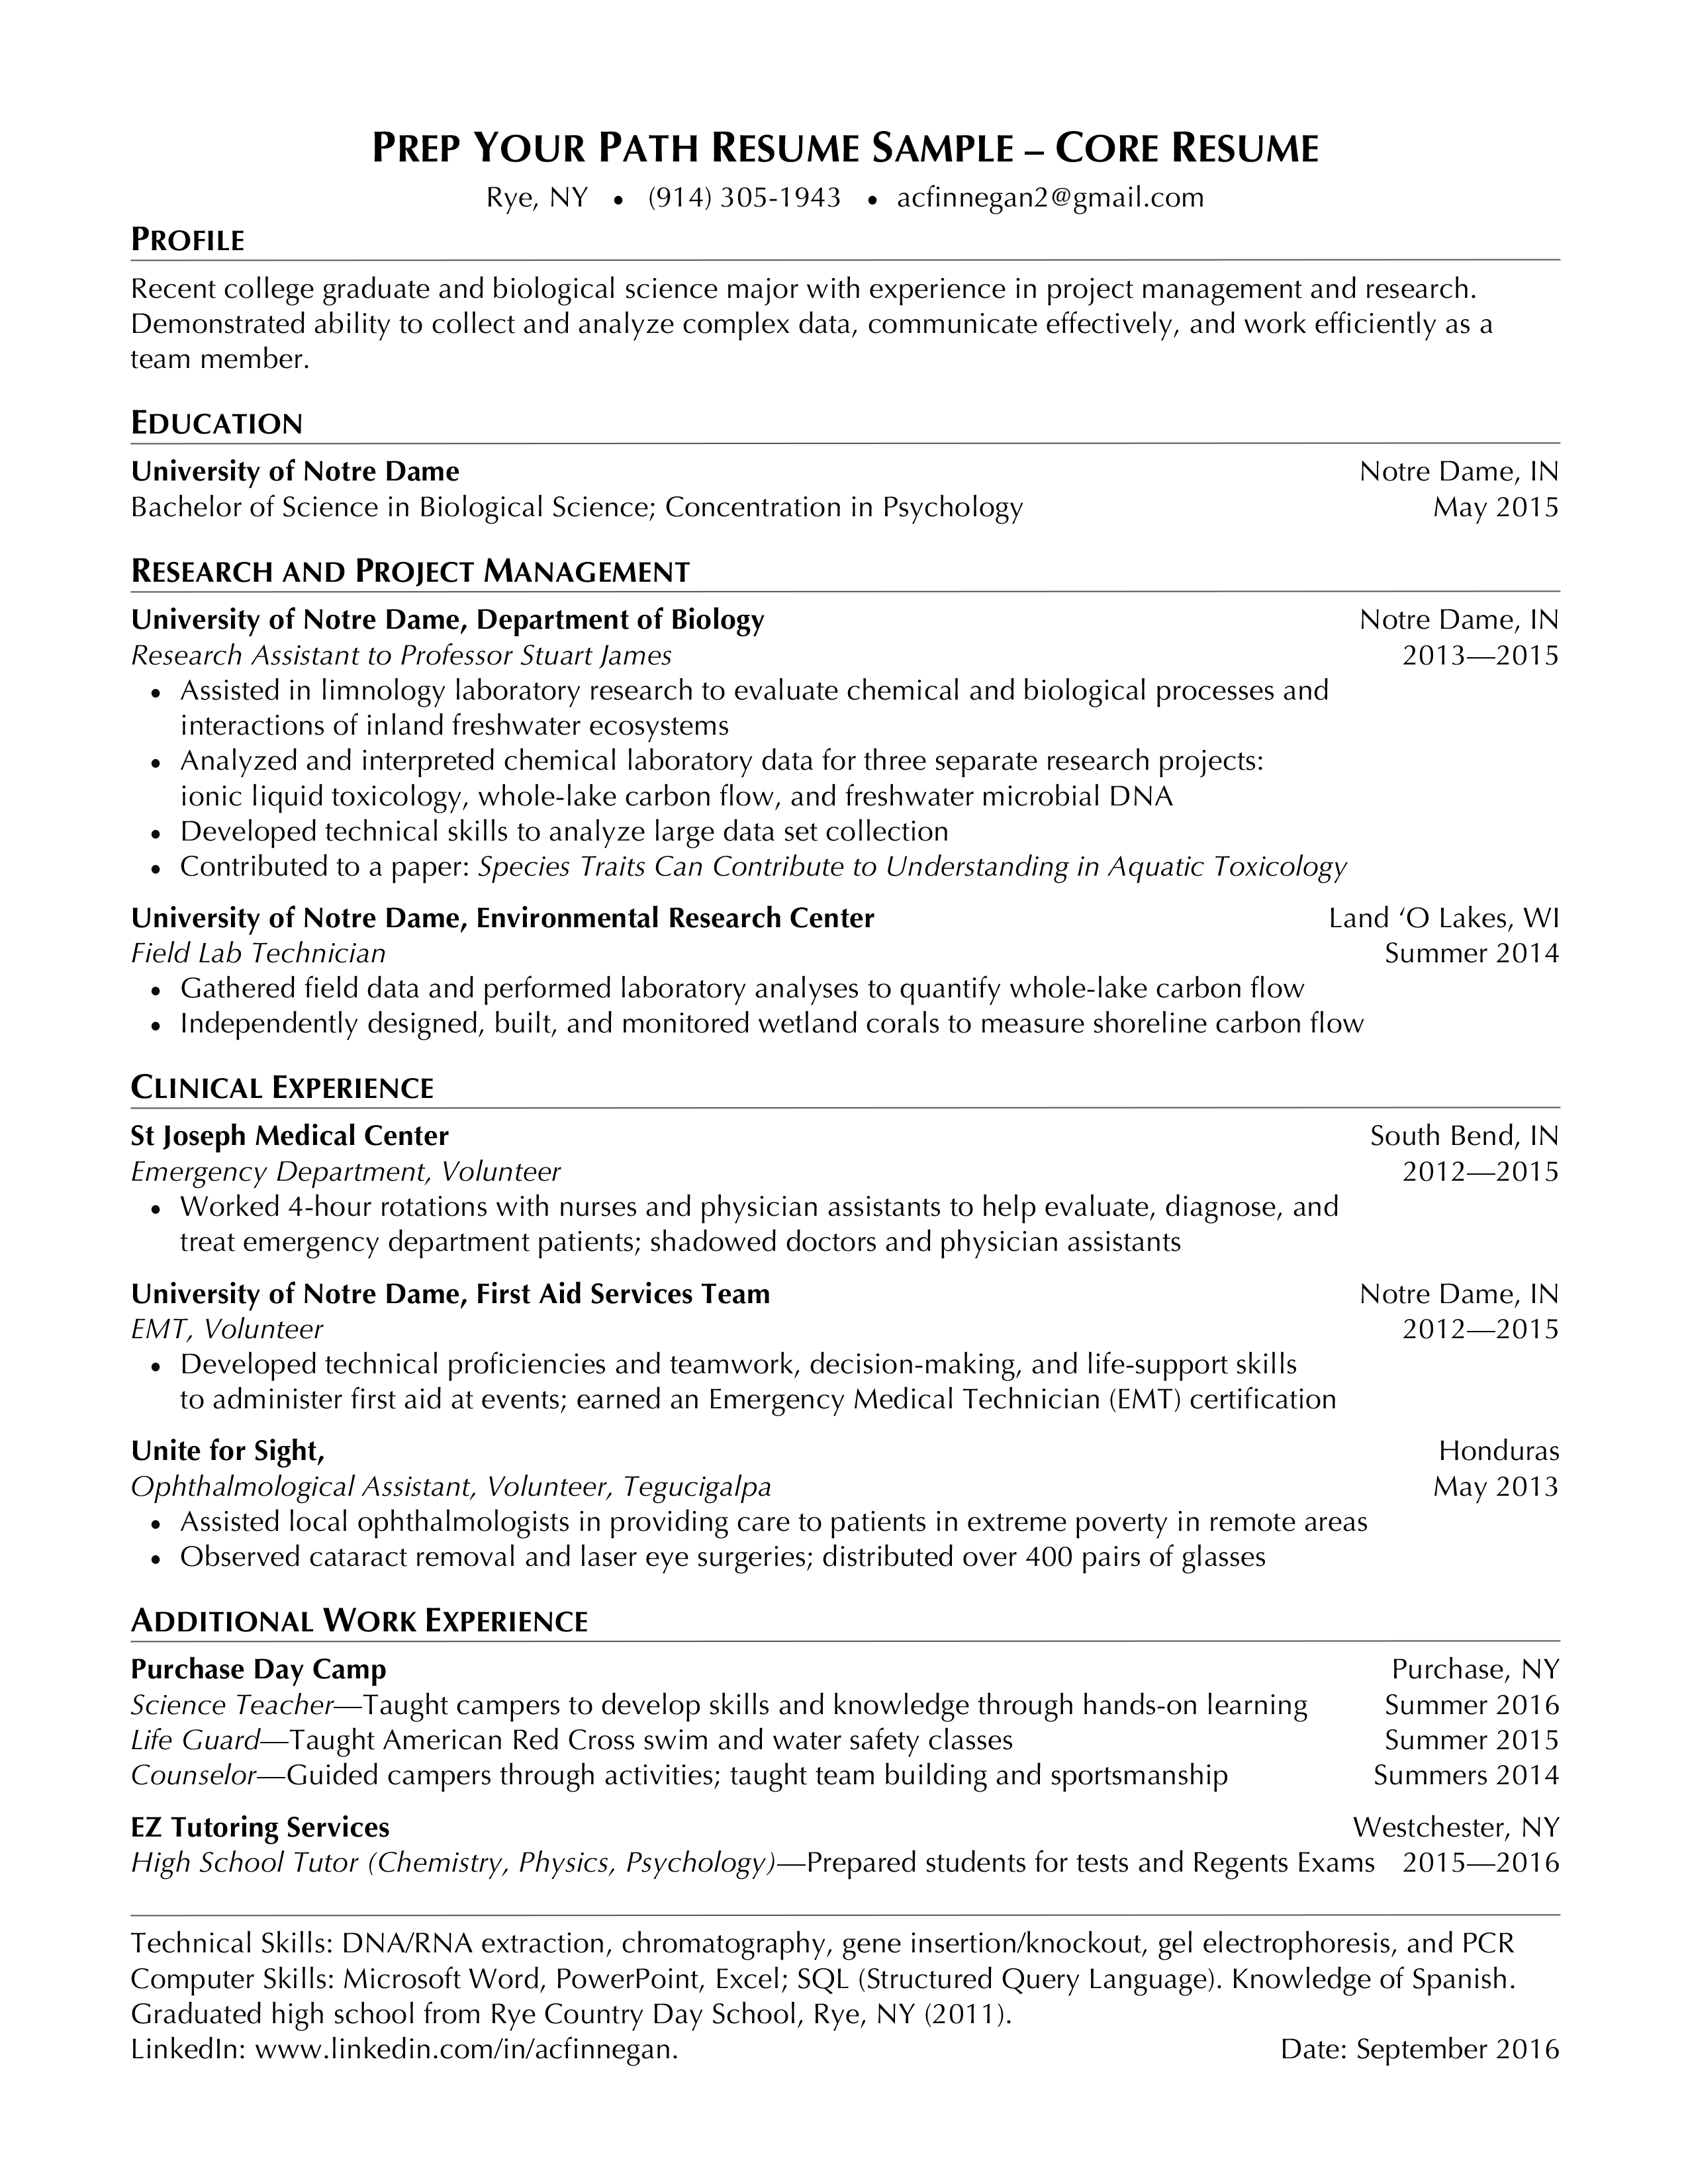 Core Resume VIEW LARGER